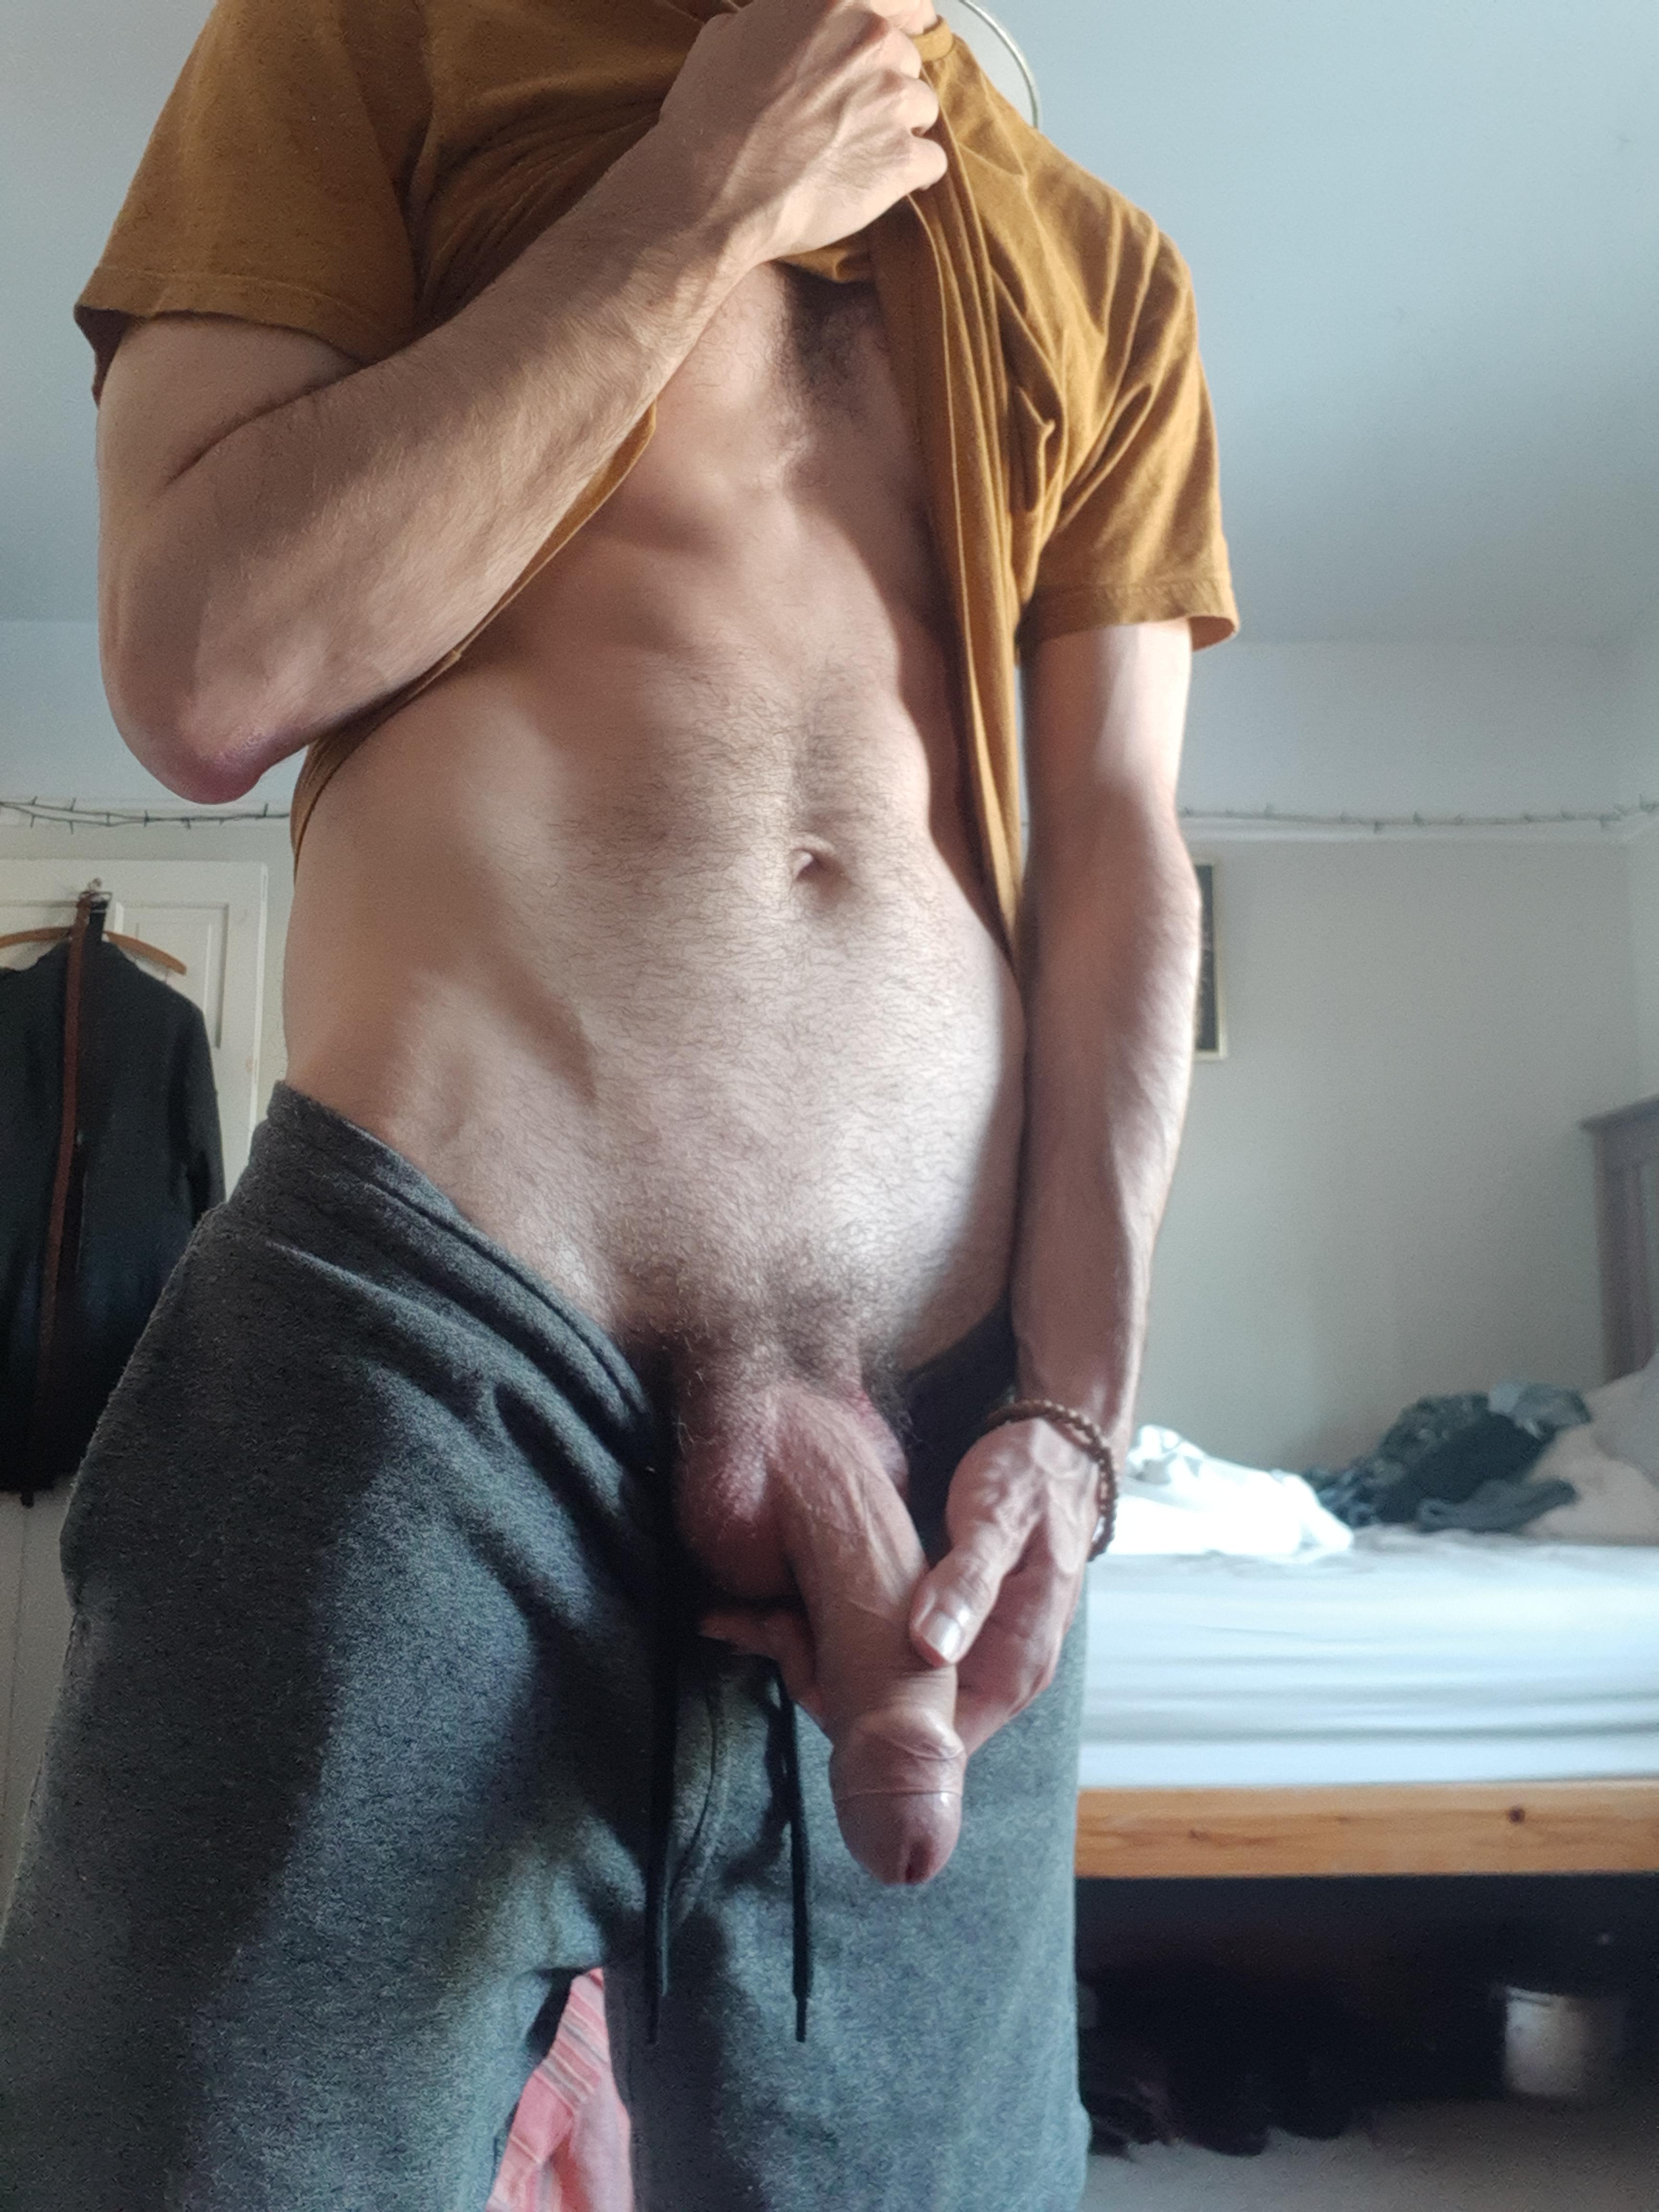 Nice fit body and uncut cock